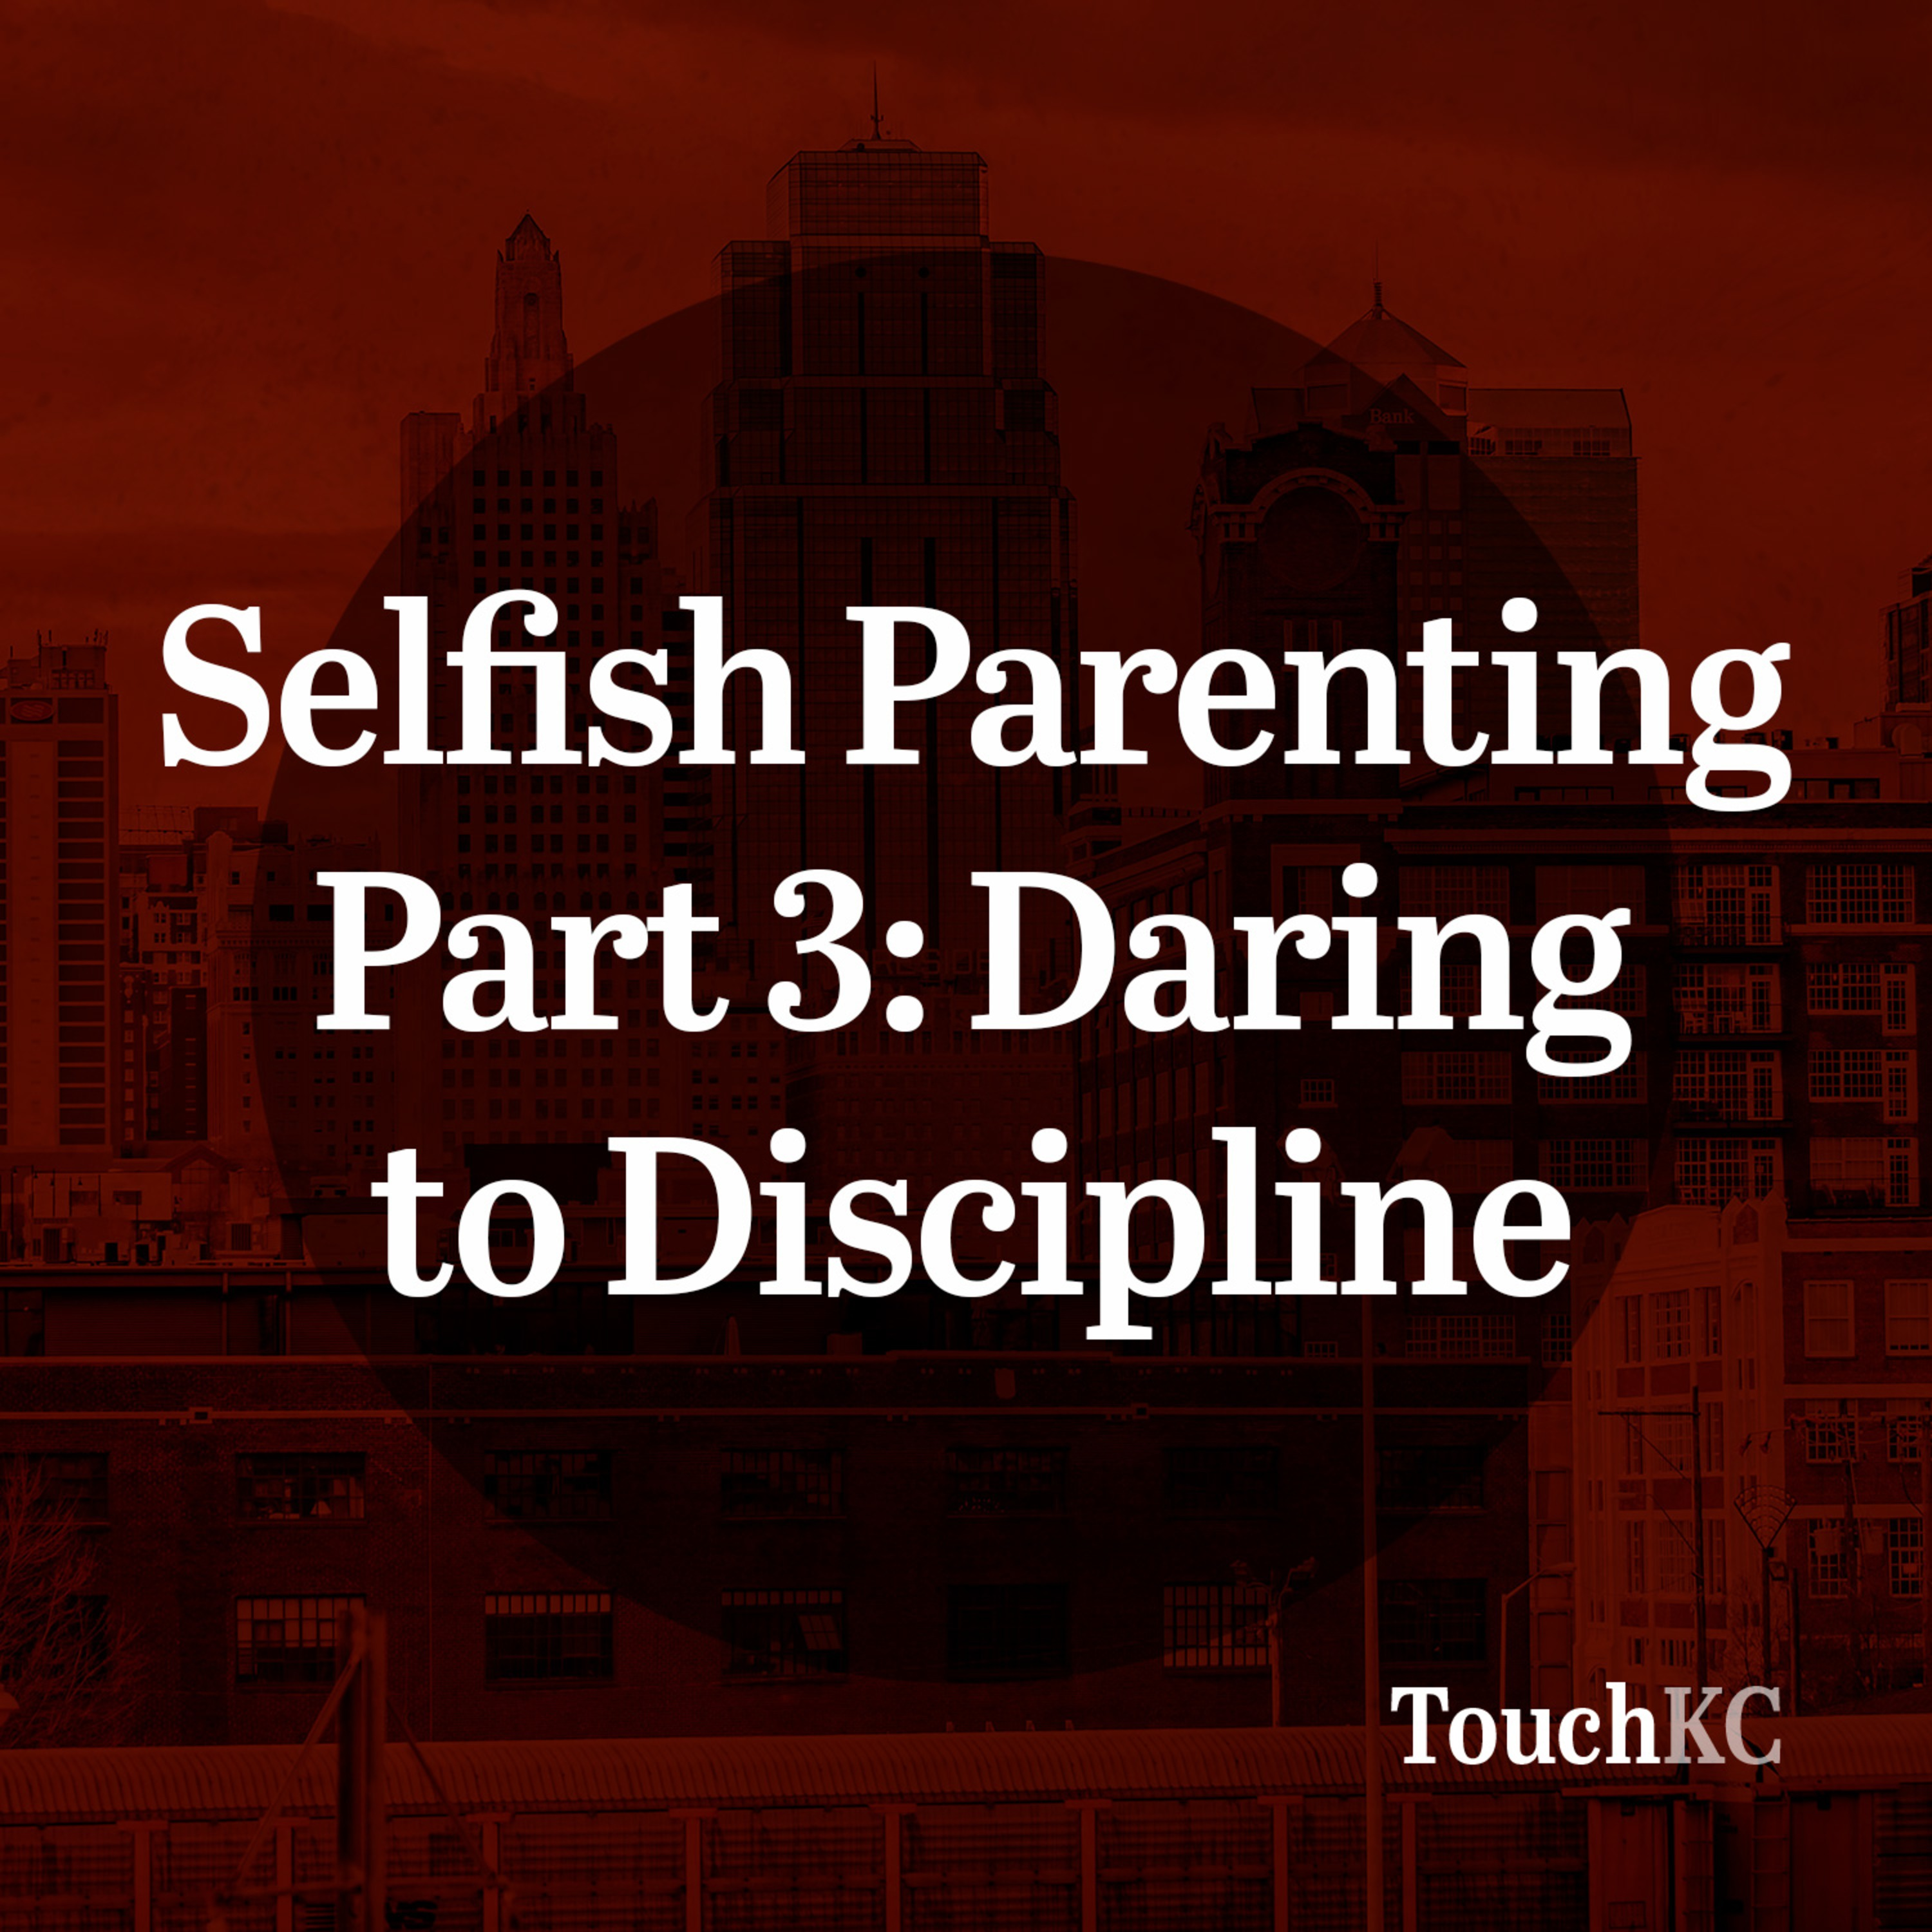 EP09 - Selfish Parenting Part 3: Daring to Discipline